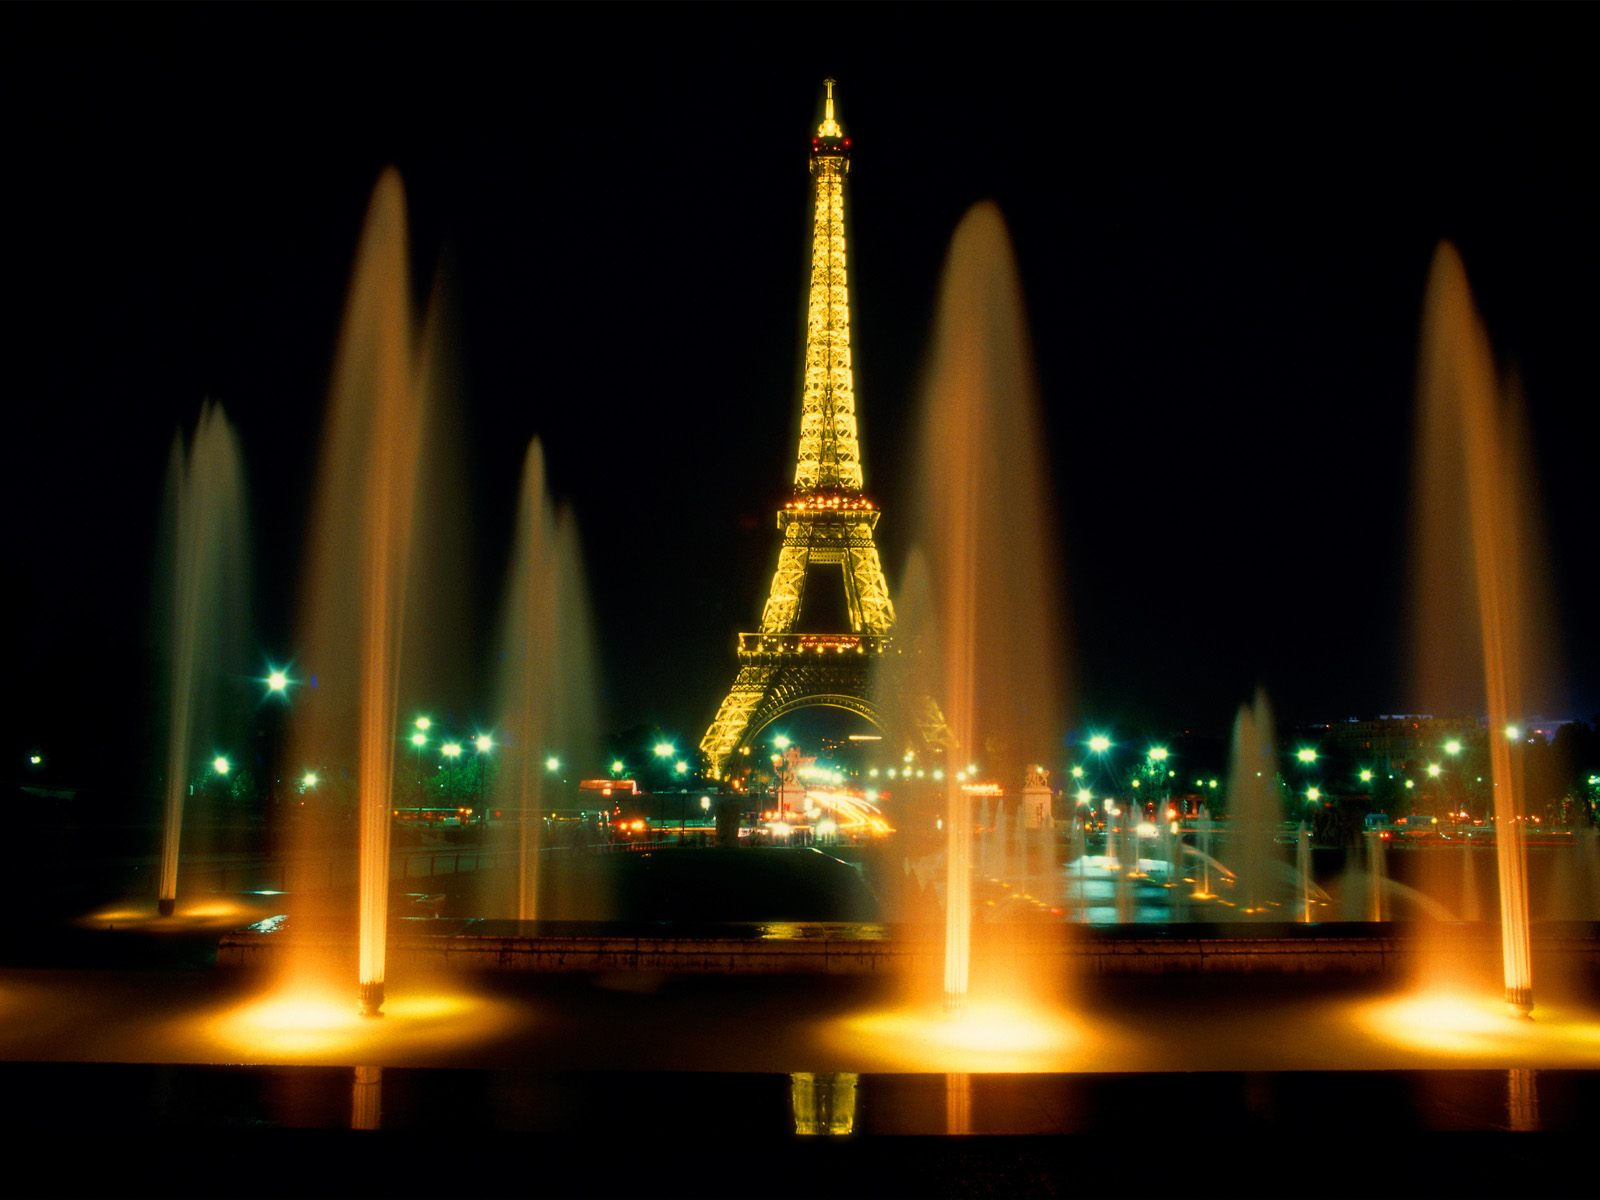 6975334-eiffel-tower-at-night-paris